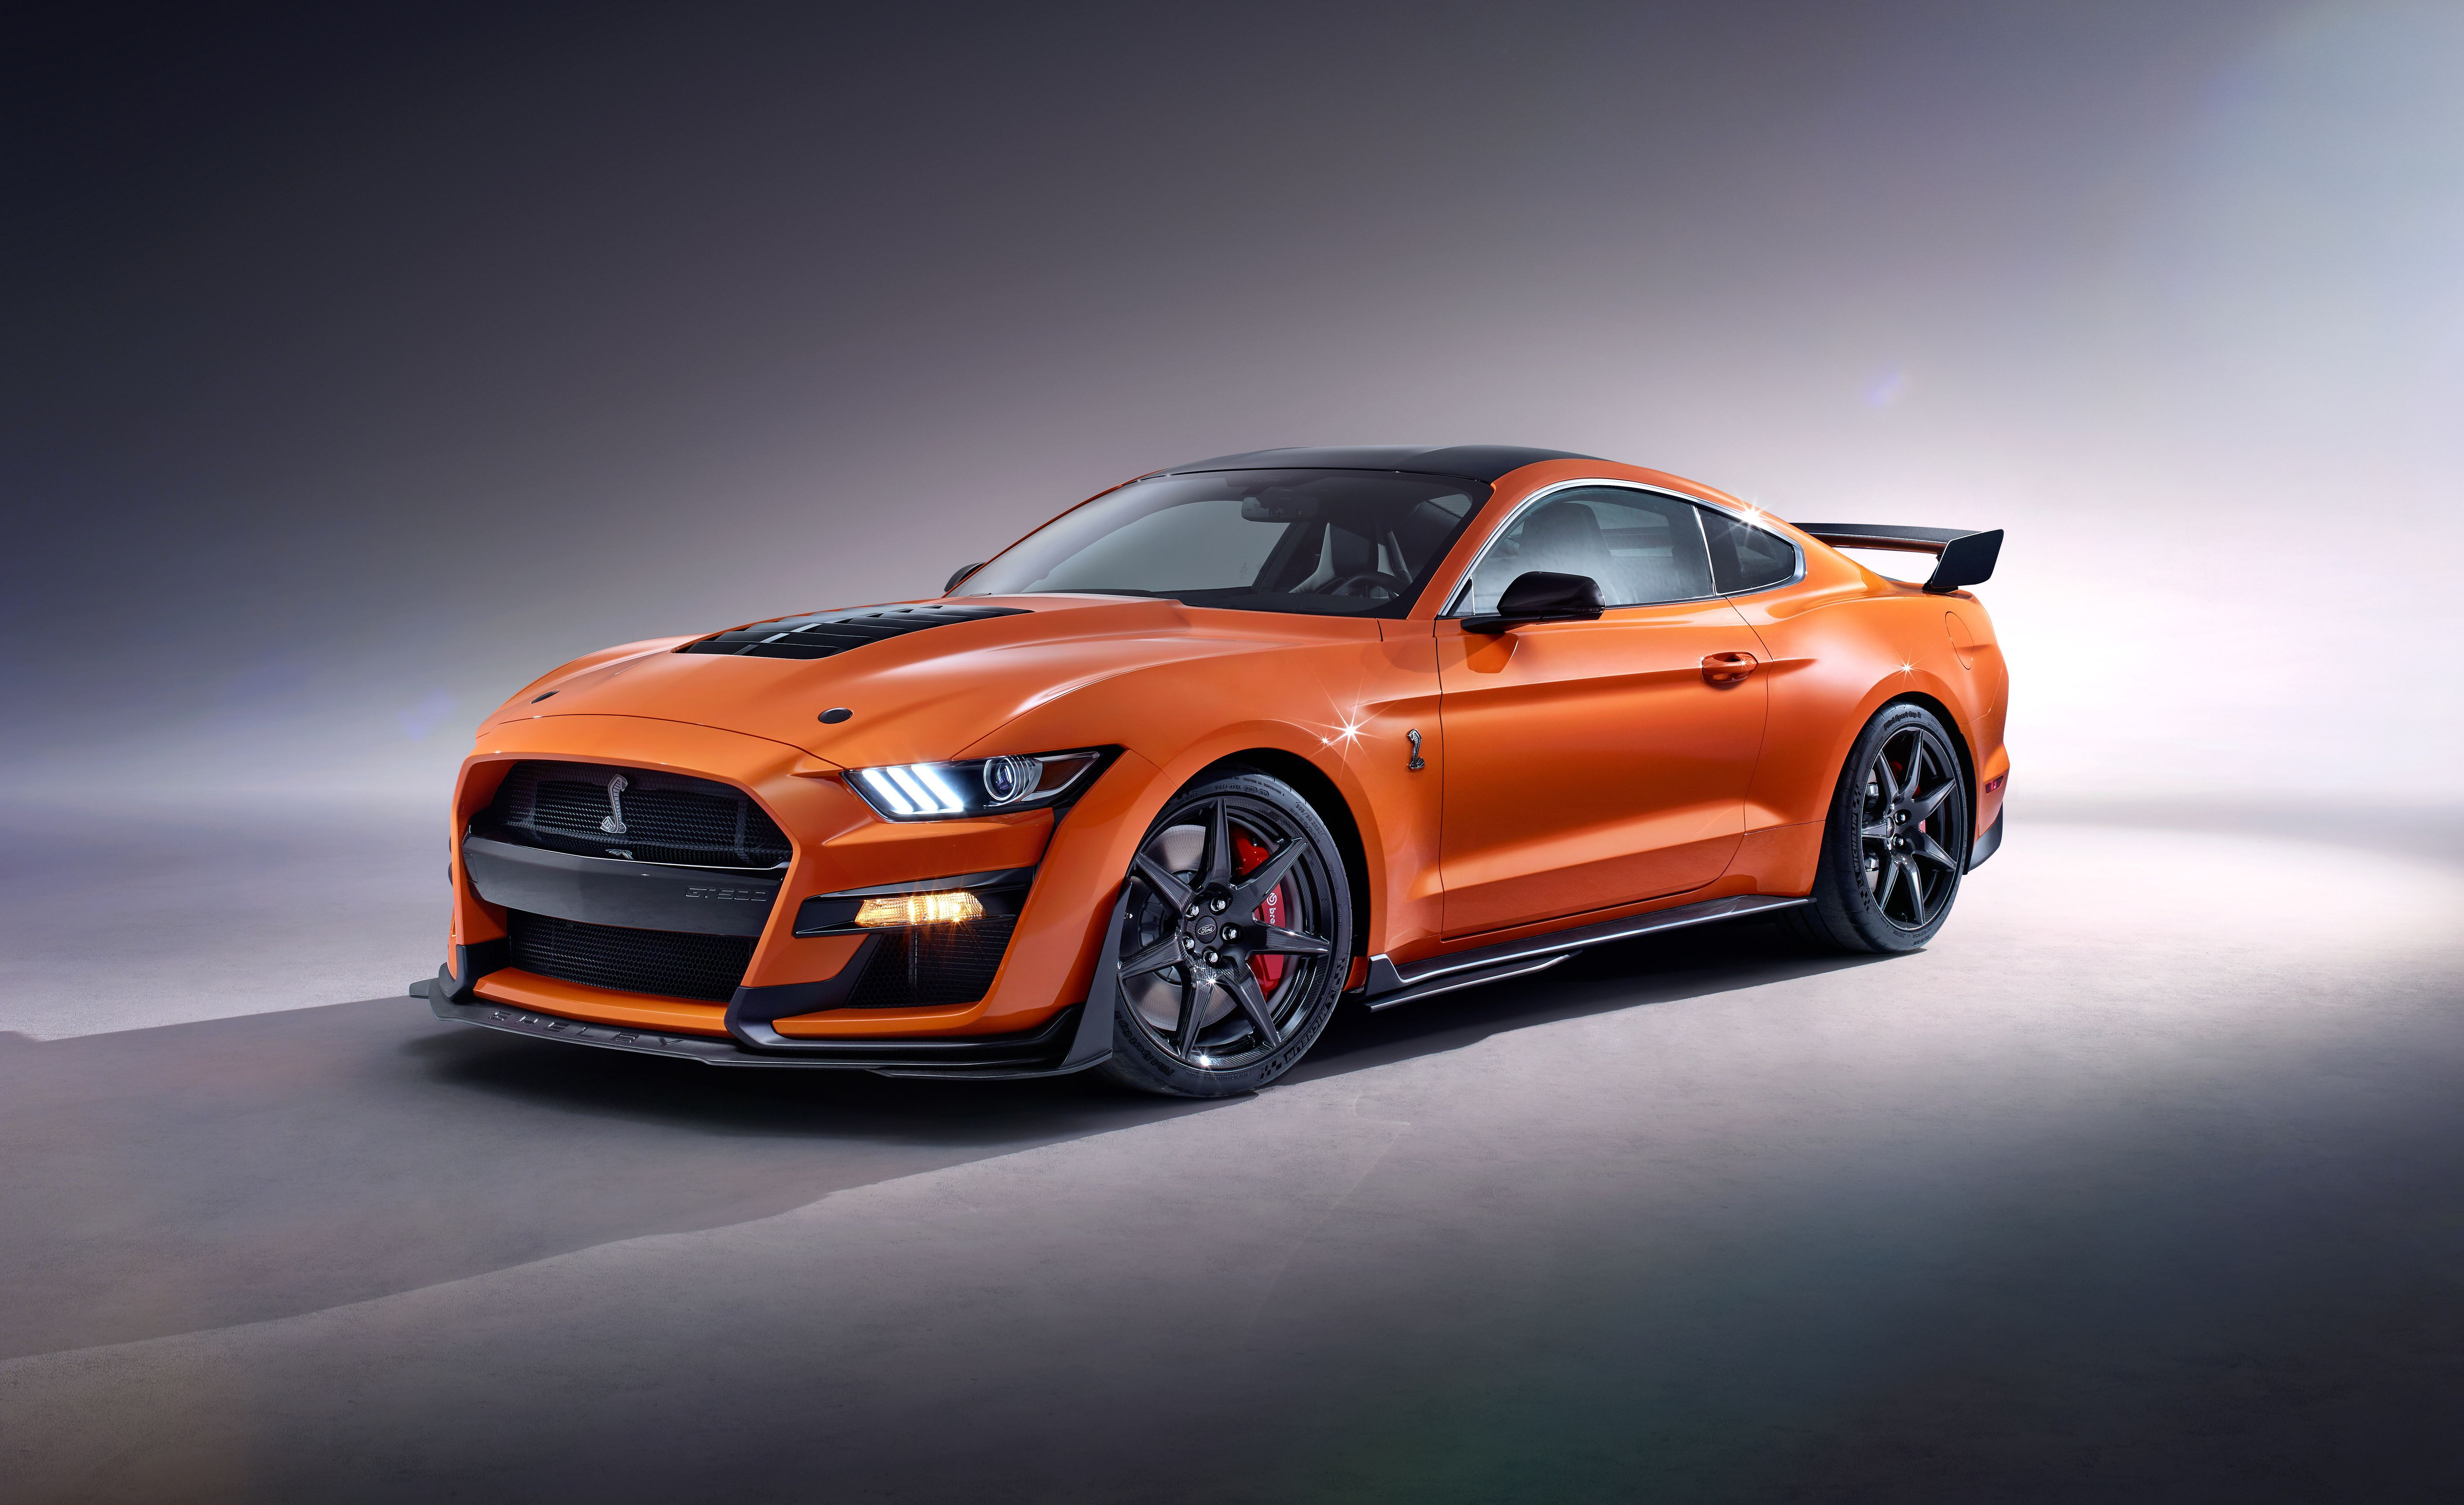 2020 Ford Mustang Shelby GT500 5k, HD Cars, 4k Wallpapers ...